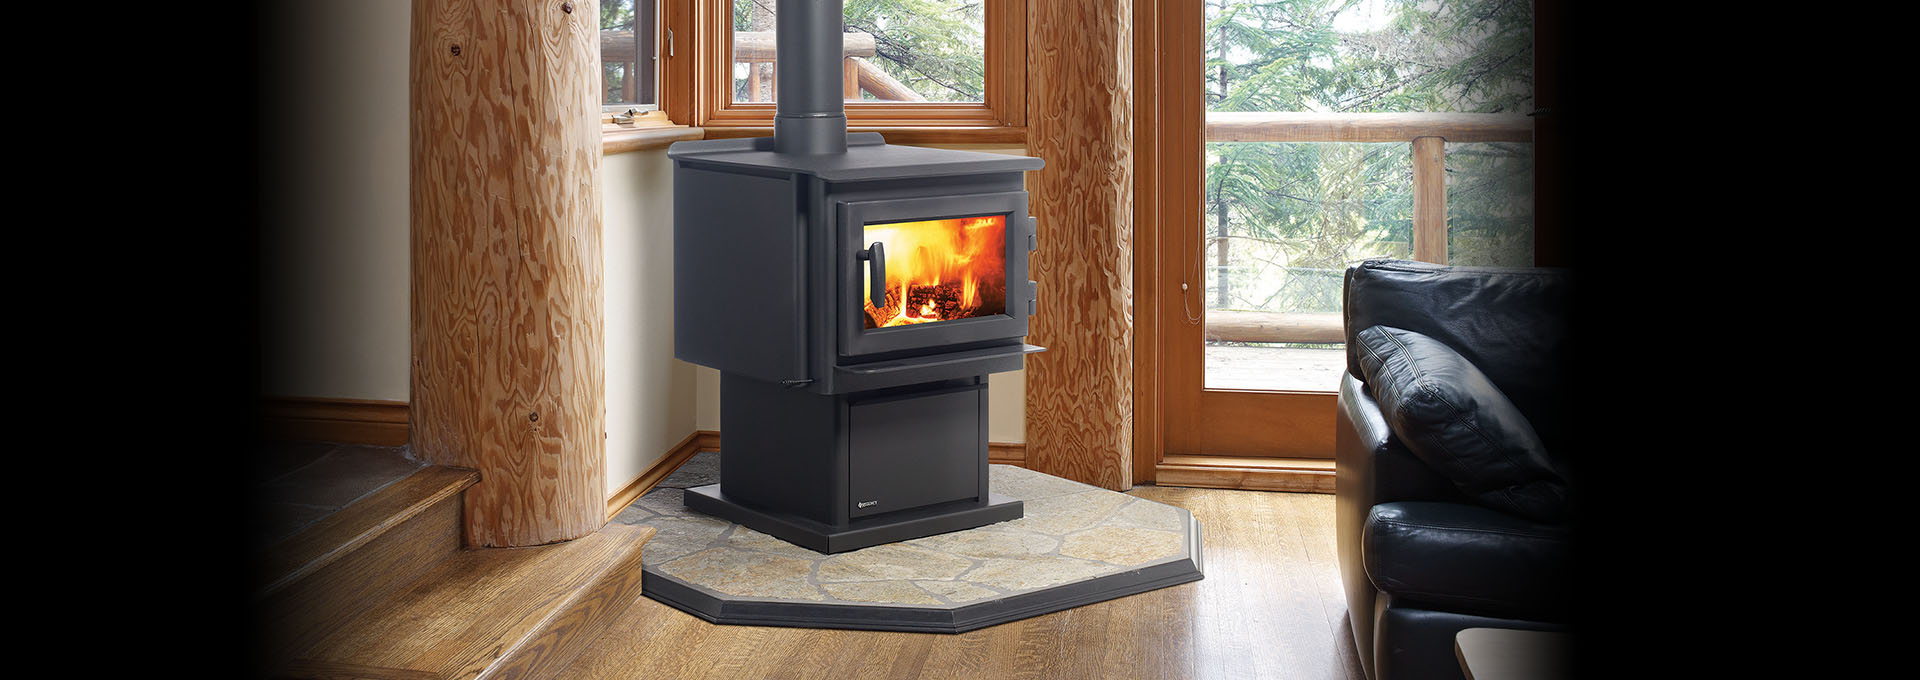 en with the wood your home space stoves categories and burning canada fireplaces fireplace heat depot decor